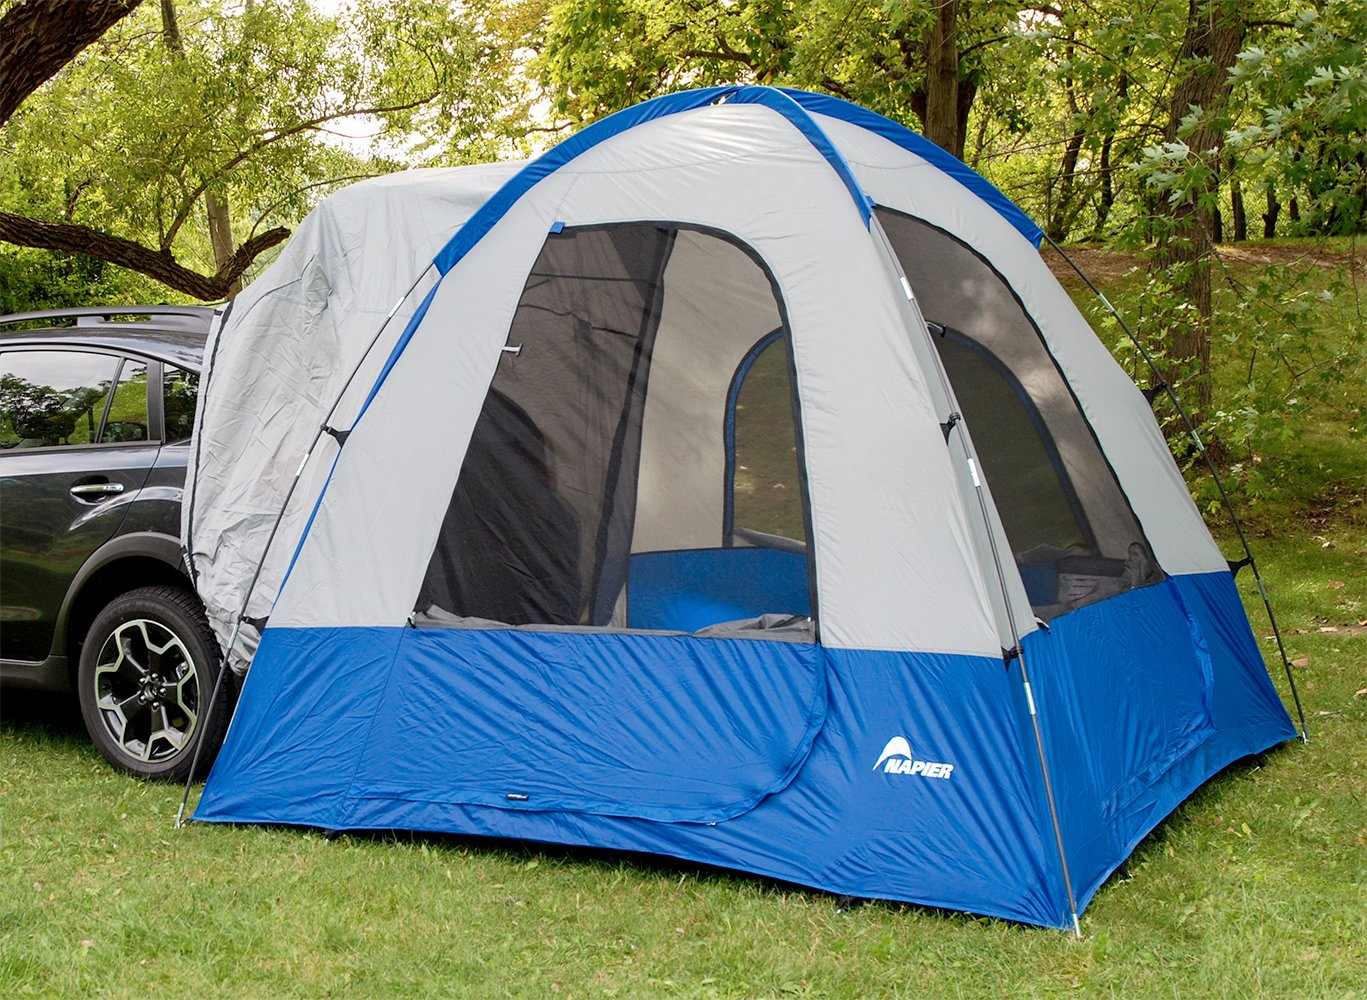 Sportz Dome-To-Go Hatchback Tent & Sportz Dome-To-Go Hatchback Tent - Camping Gear by Napier Ships Free